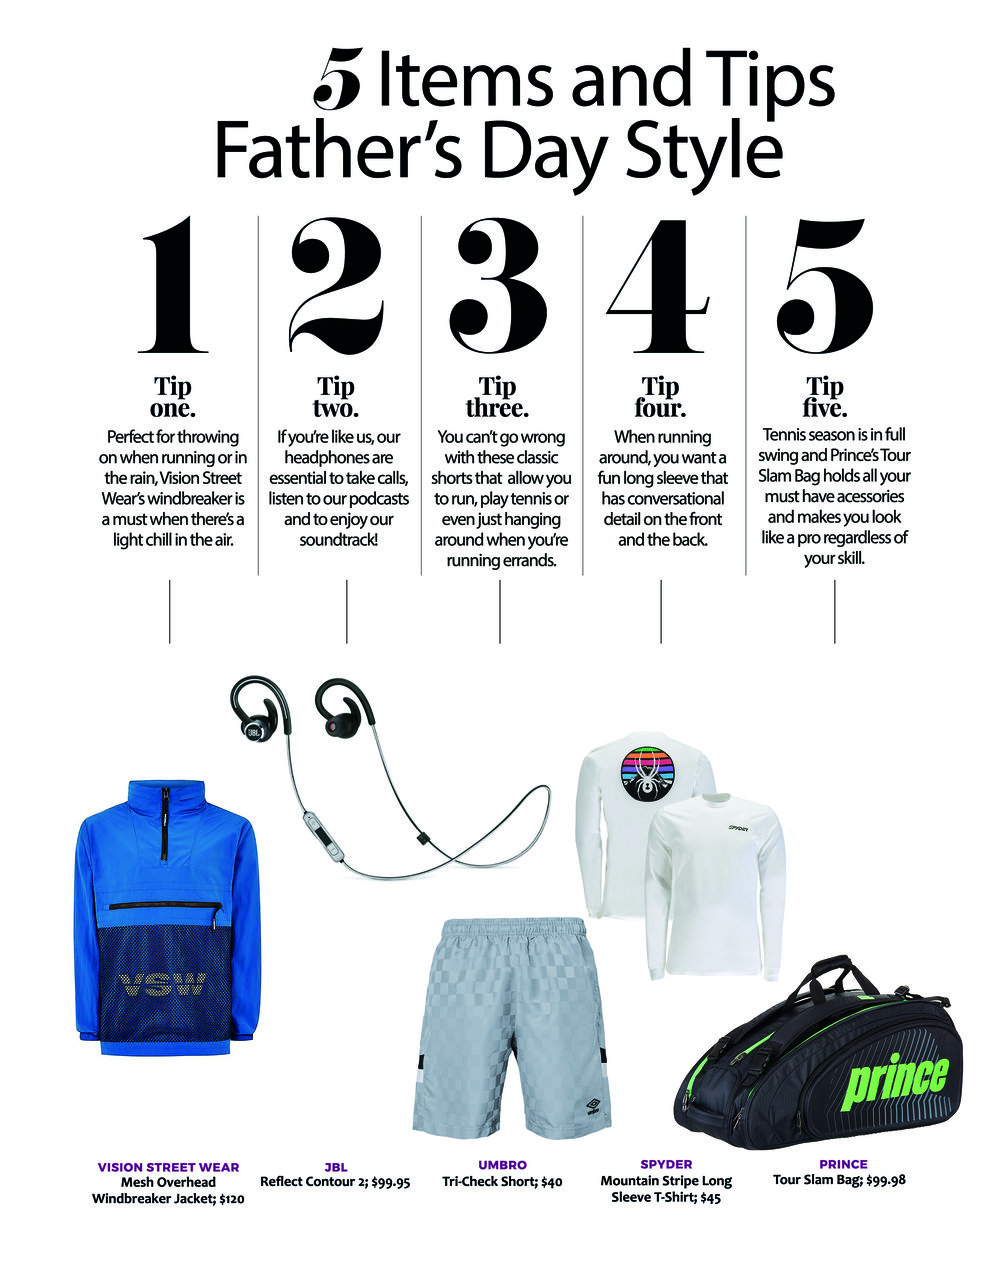 5 ITEMS FOR GIFTING DAD.jpg